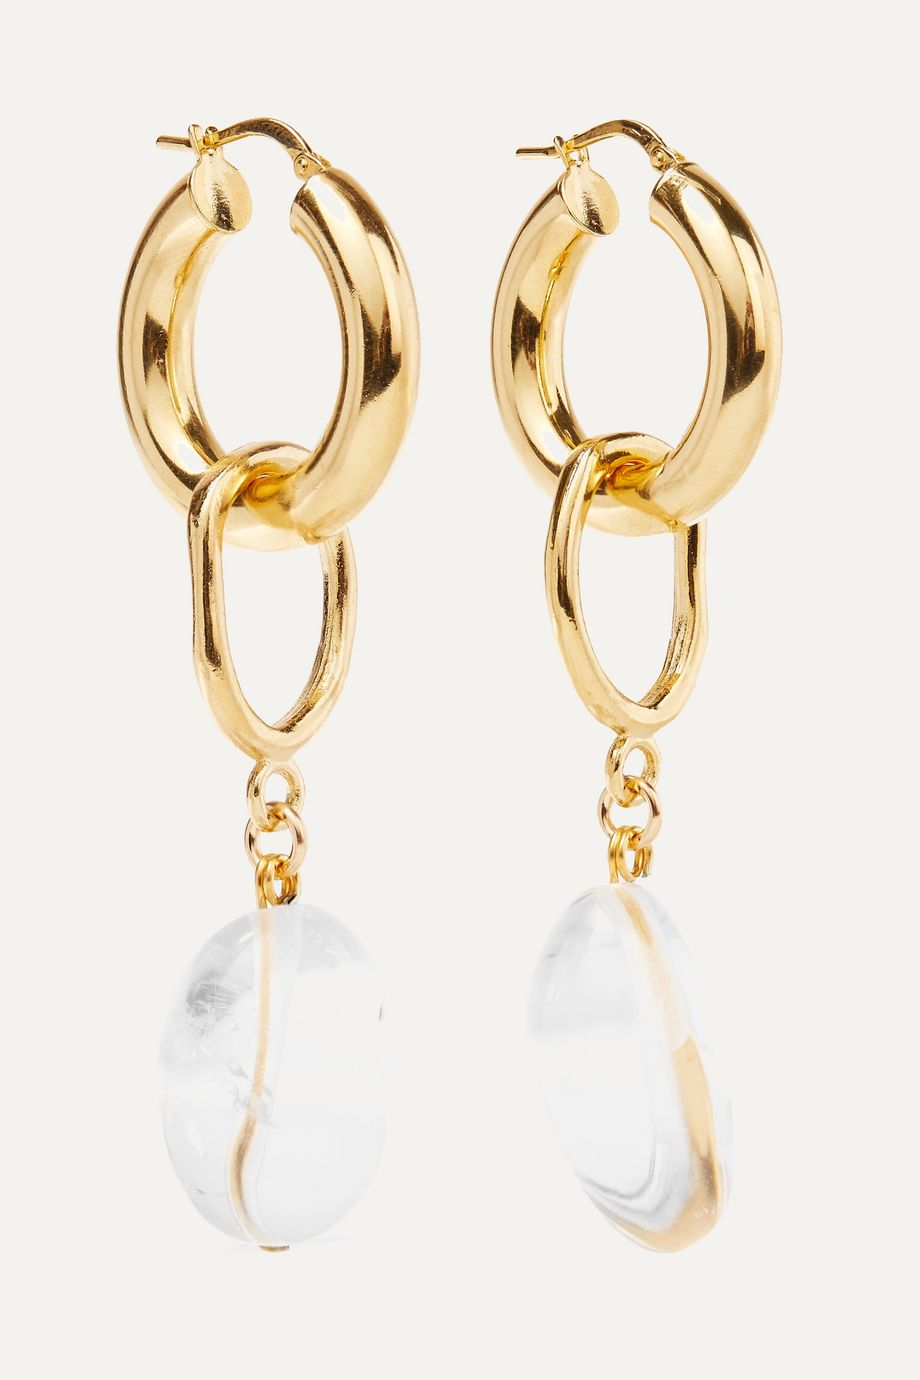 Mounser Found Objects gold-plated glass hoop earrings